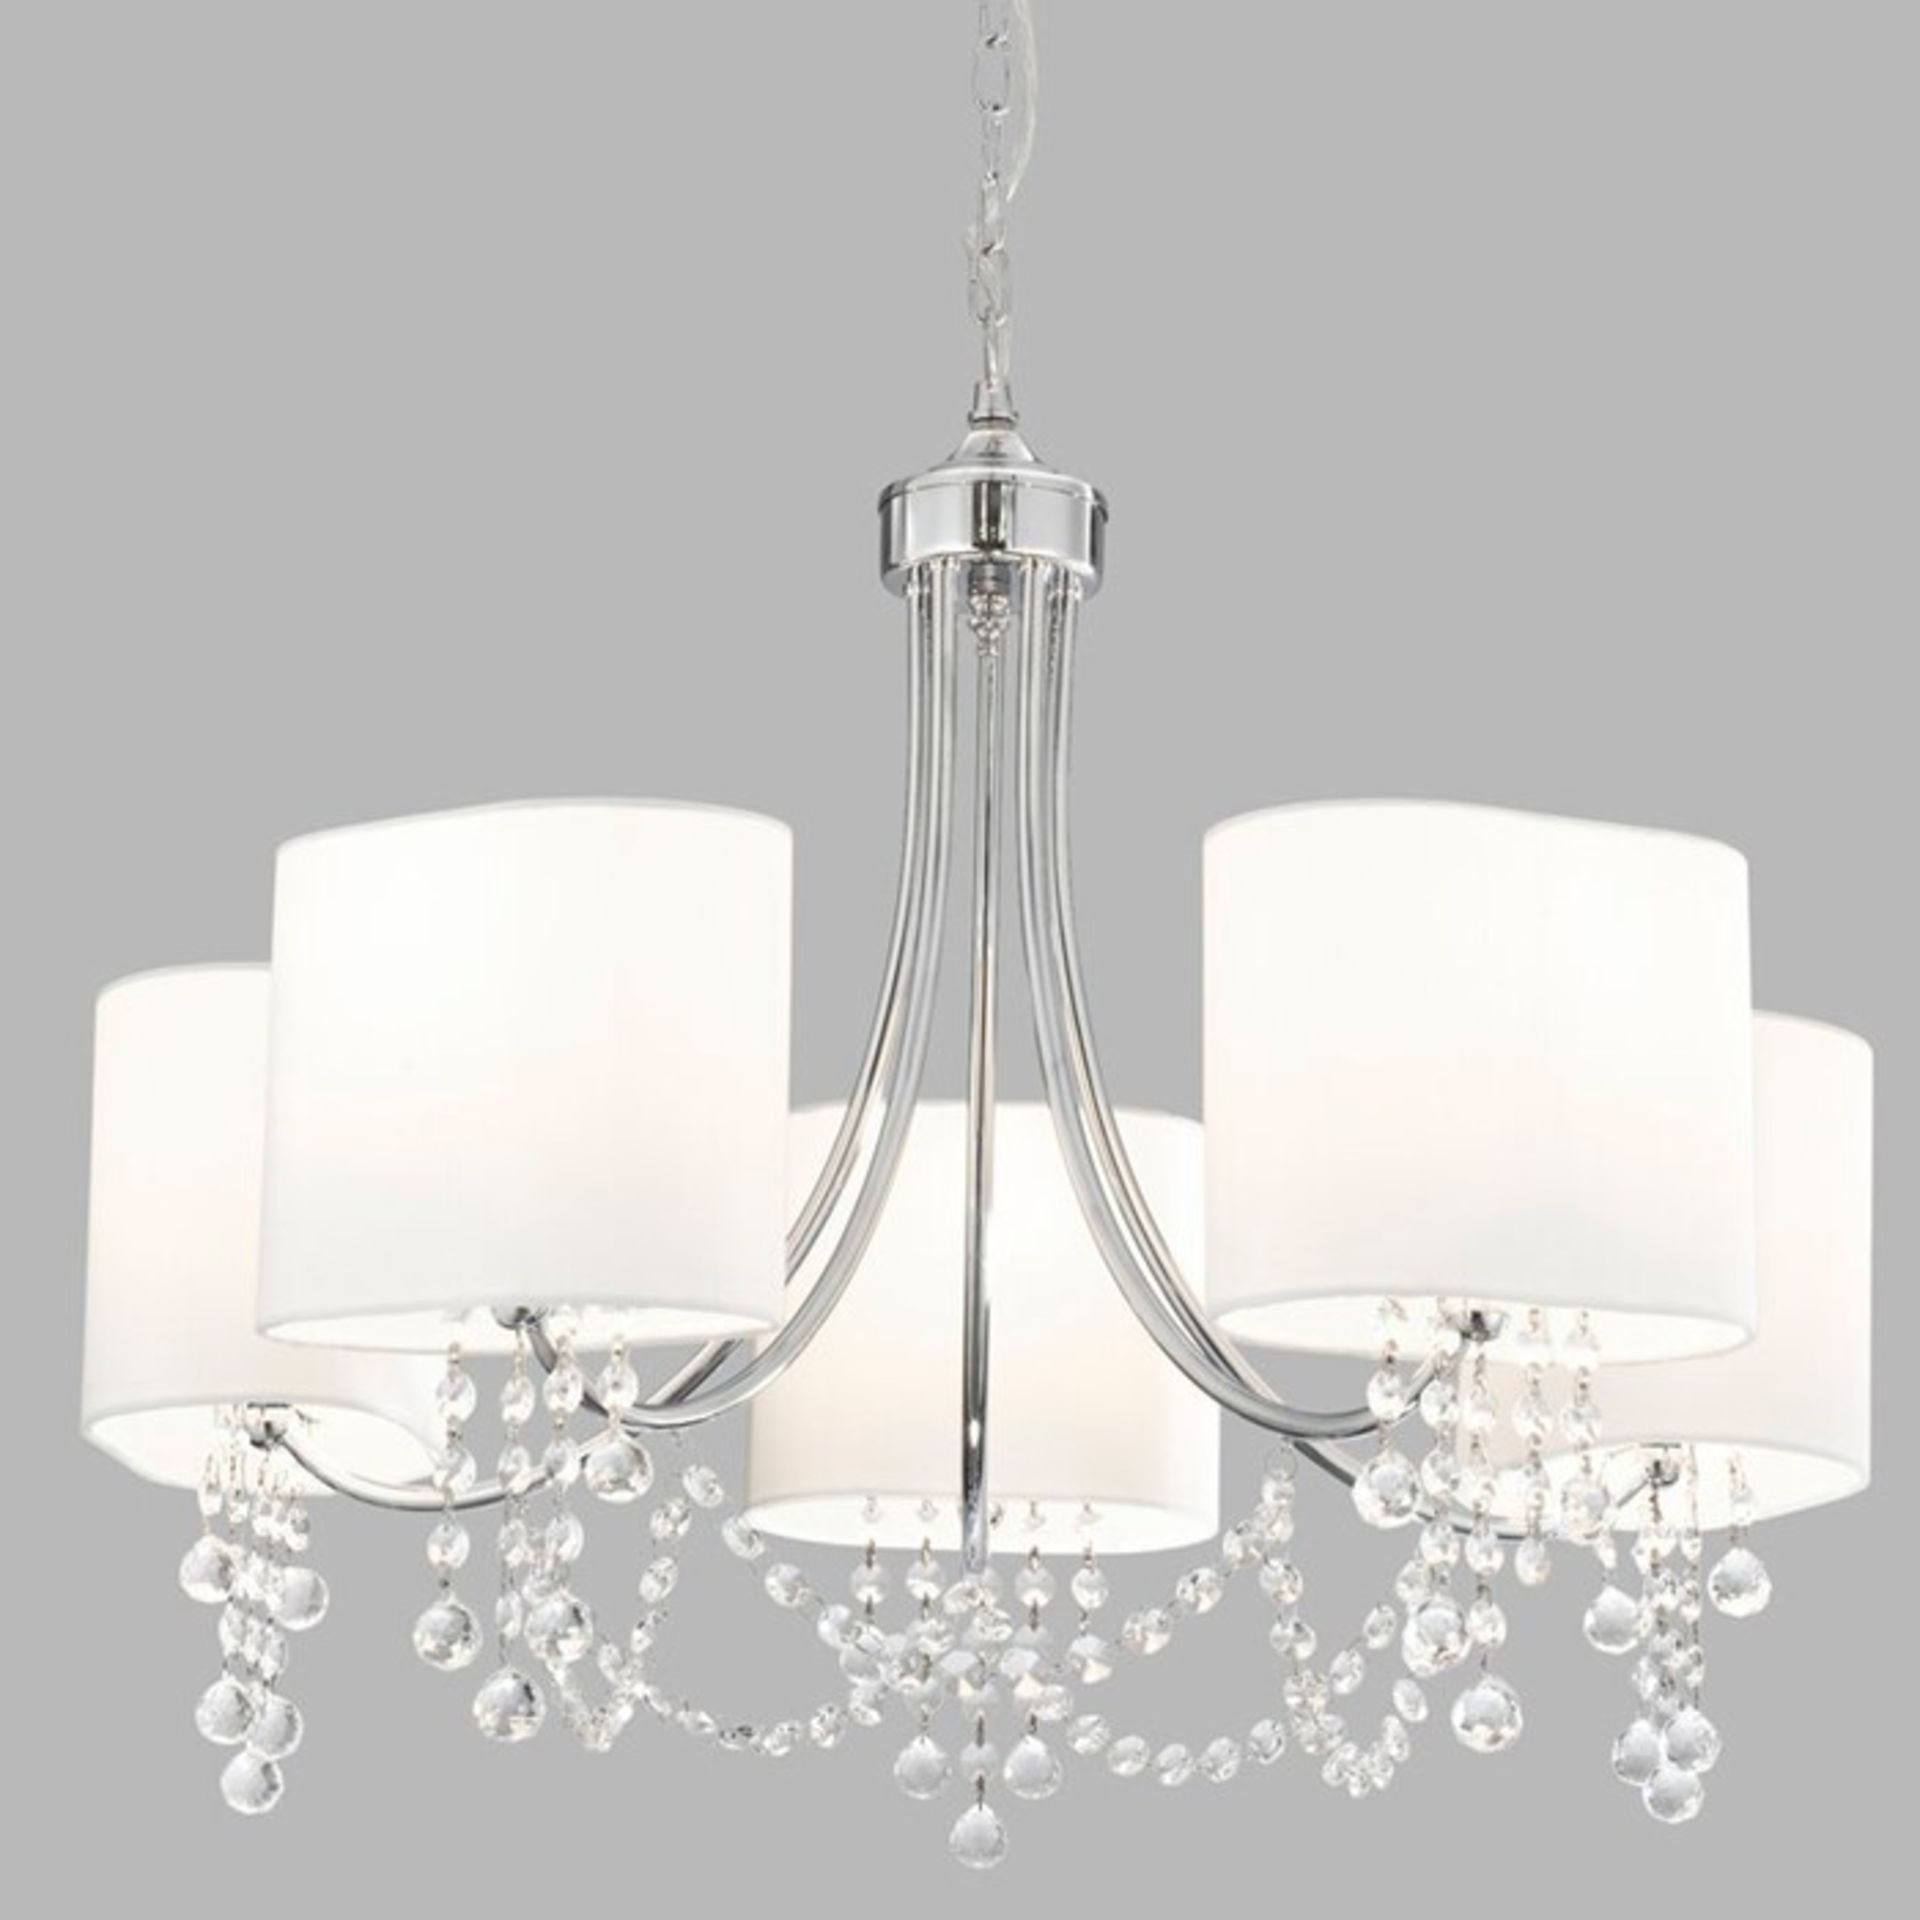 Willa Arlo Interiors, 5-Light Shaded Chandelier (POLISHED CHROME WITH WHITE SHADES) - RRP£121.99 (